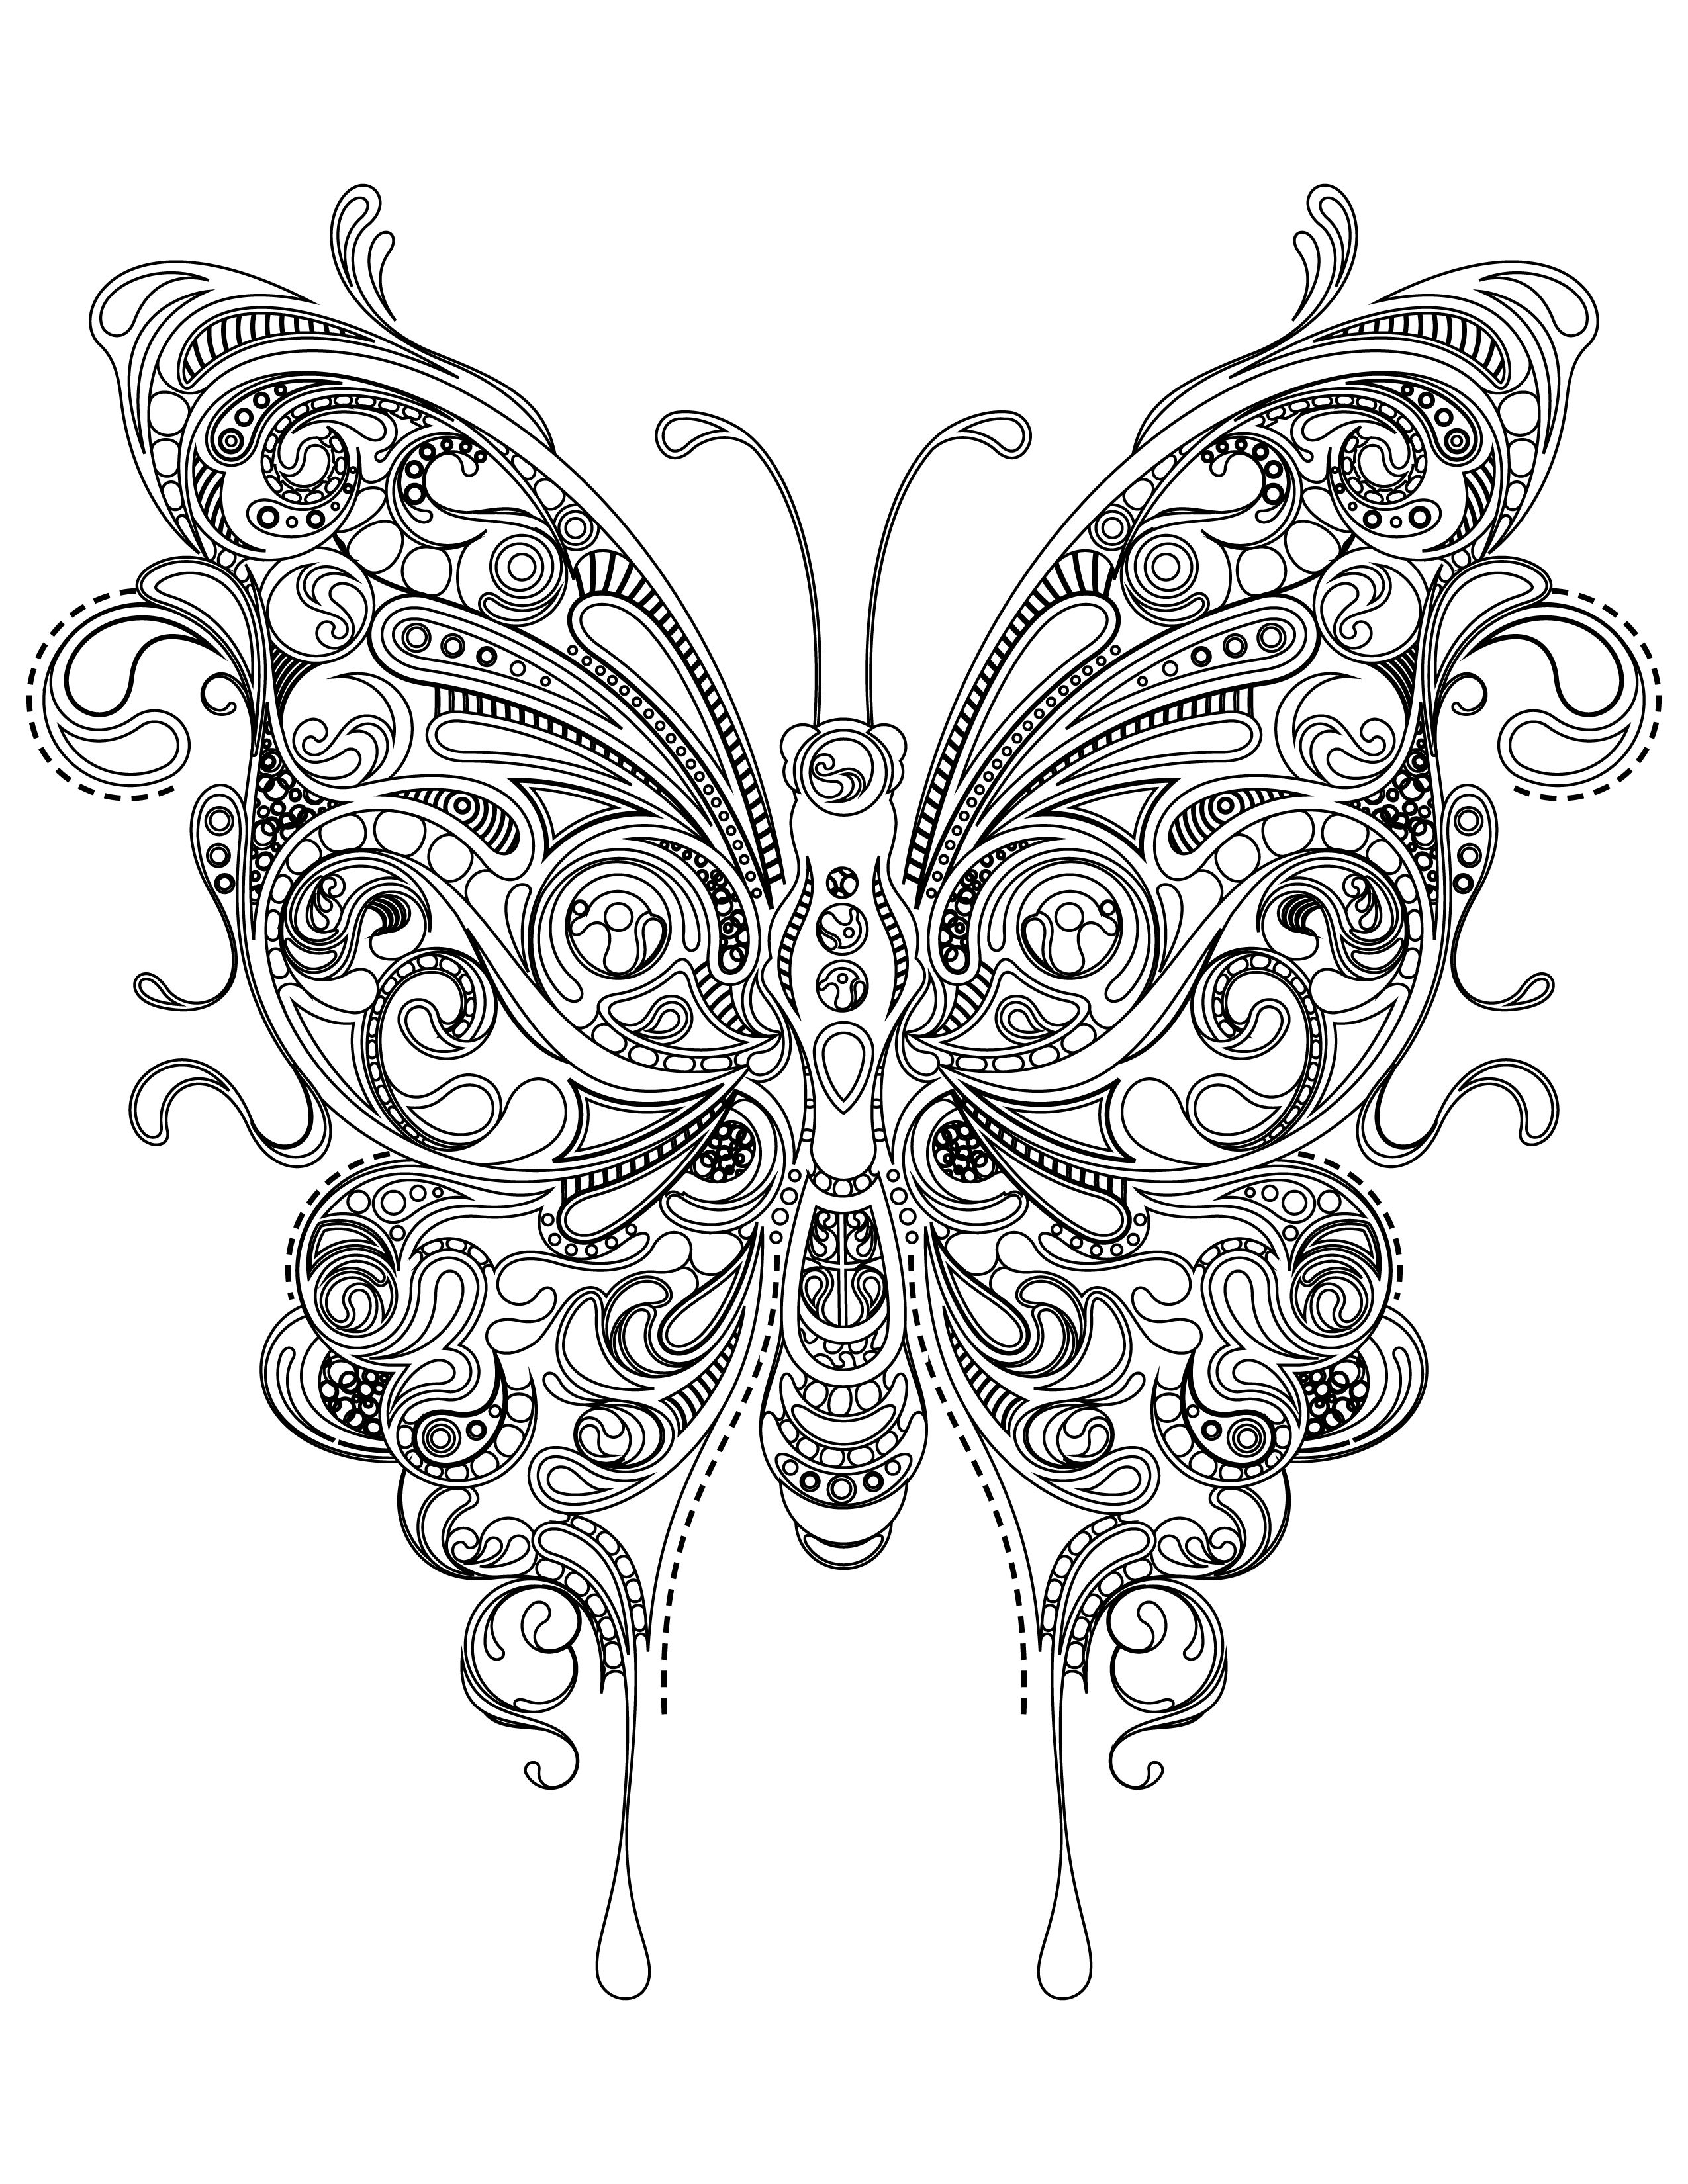 Coloriage papillon tr s difficile imprimer coloriage animaux coloriage papillon coloriage - Chat a colorier adulte ...